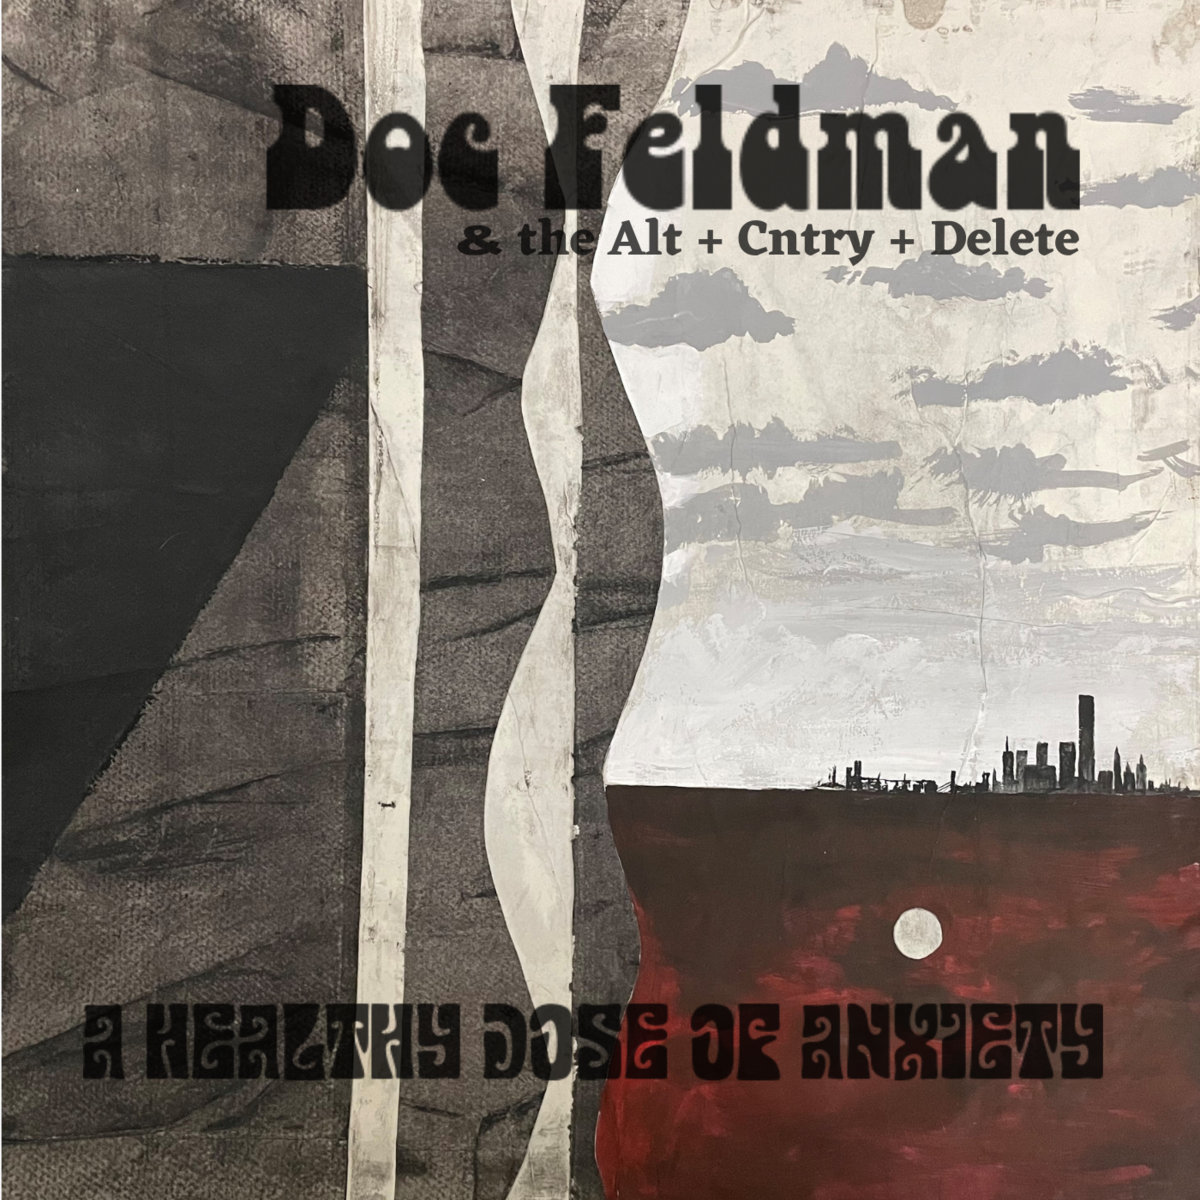 Doc Feldman & The Alt + Cntry + Delete - A Healthy Dose Of Anxiety